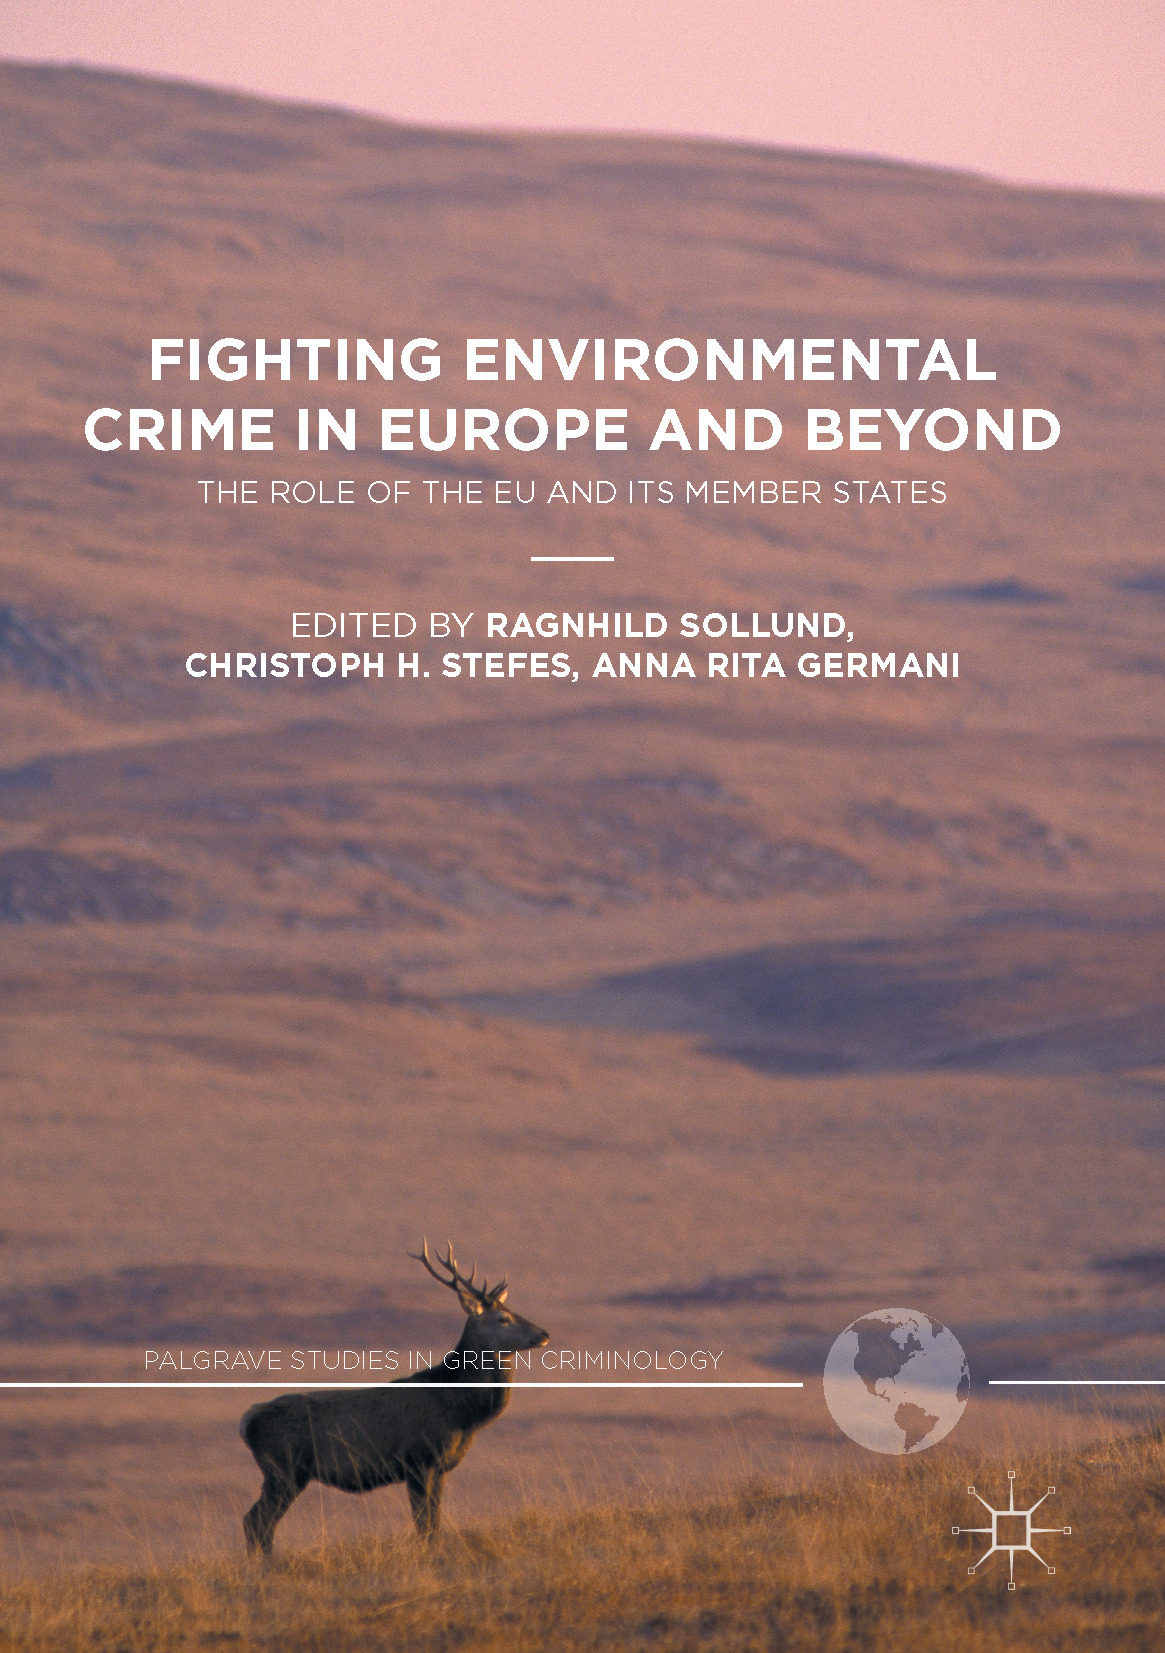 Germani, Anna Rita - Fighting Environmental Crime in Europe and Beyond, ebook